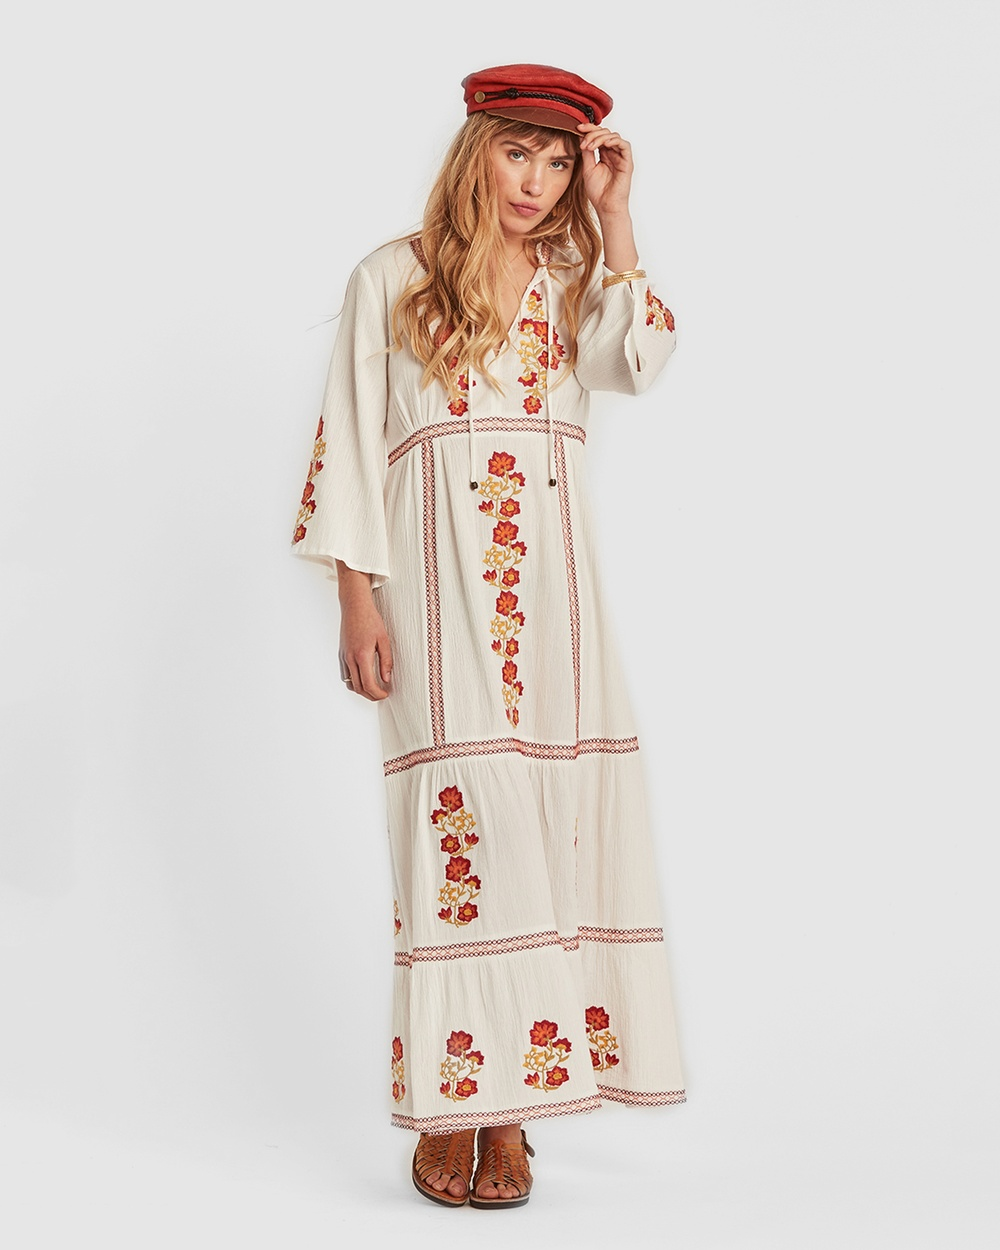 Arnhem White Willow White Maxi Dress